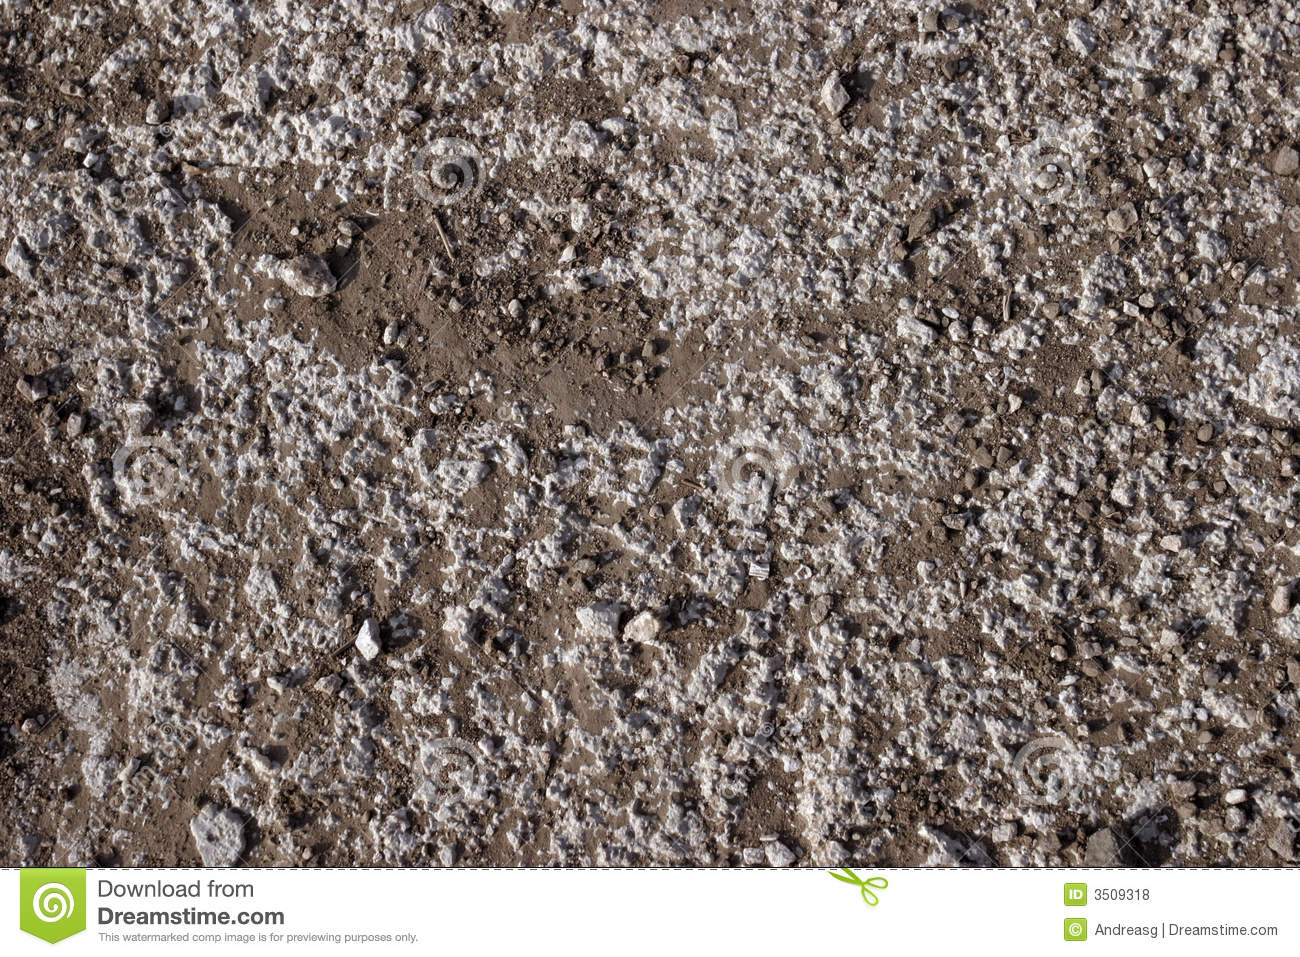 Dirt And Stone : Dirt and stone surface royalty free stock photos image